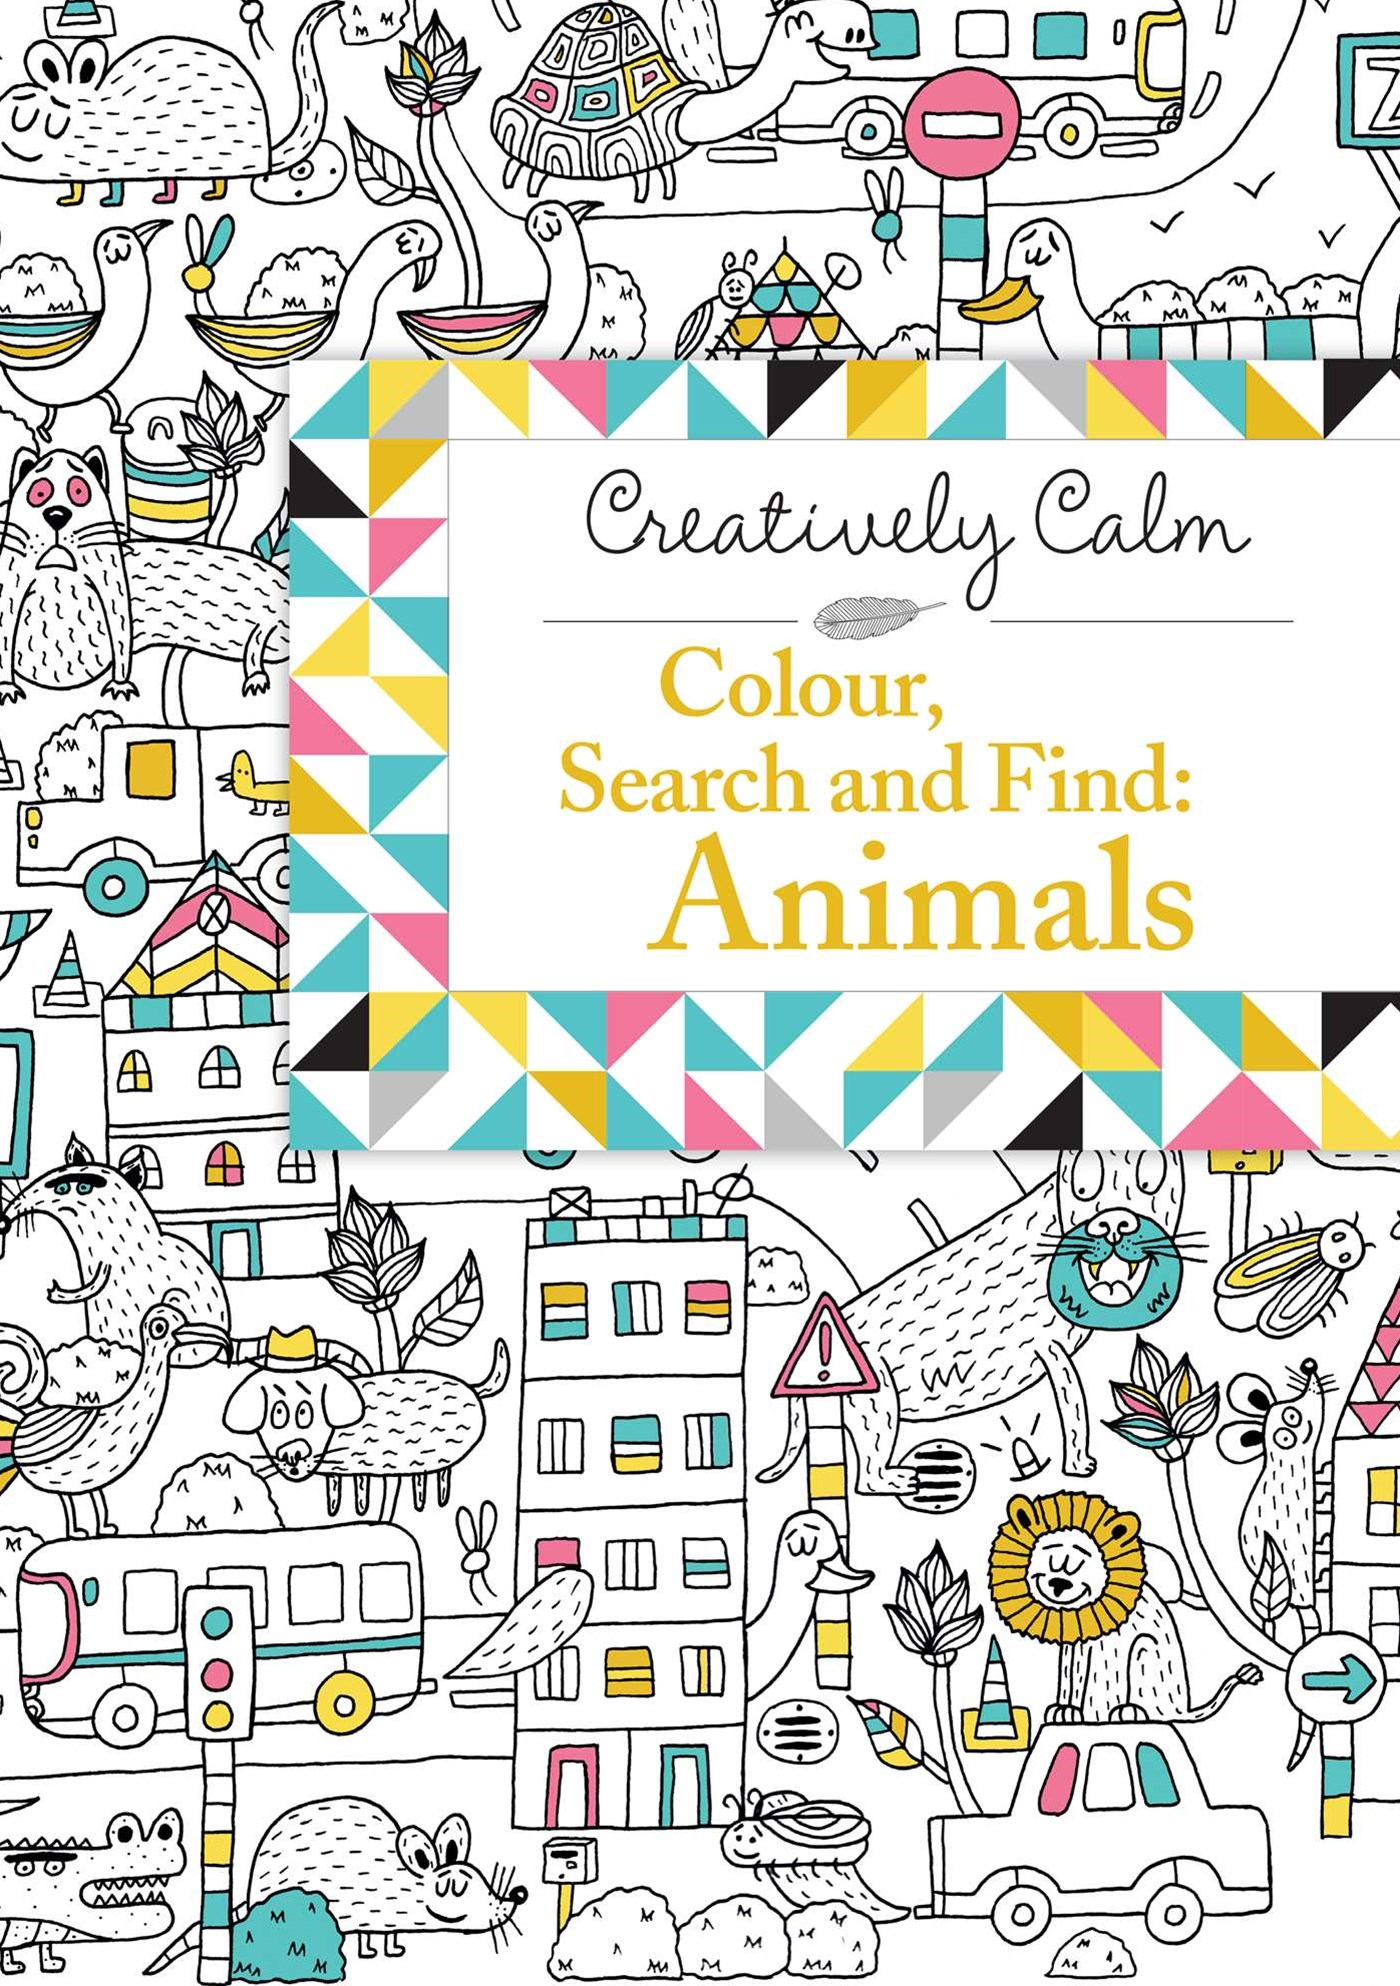 Creatively Calm: Colour, Search and Find Animals